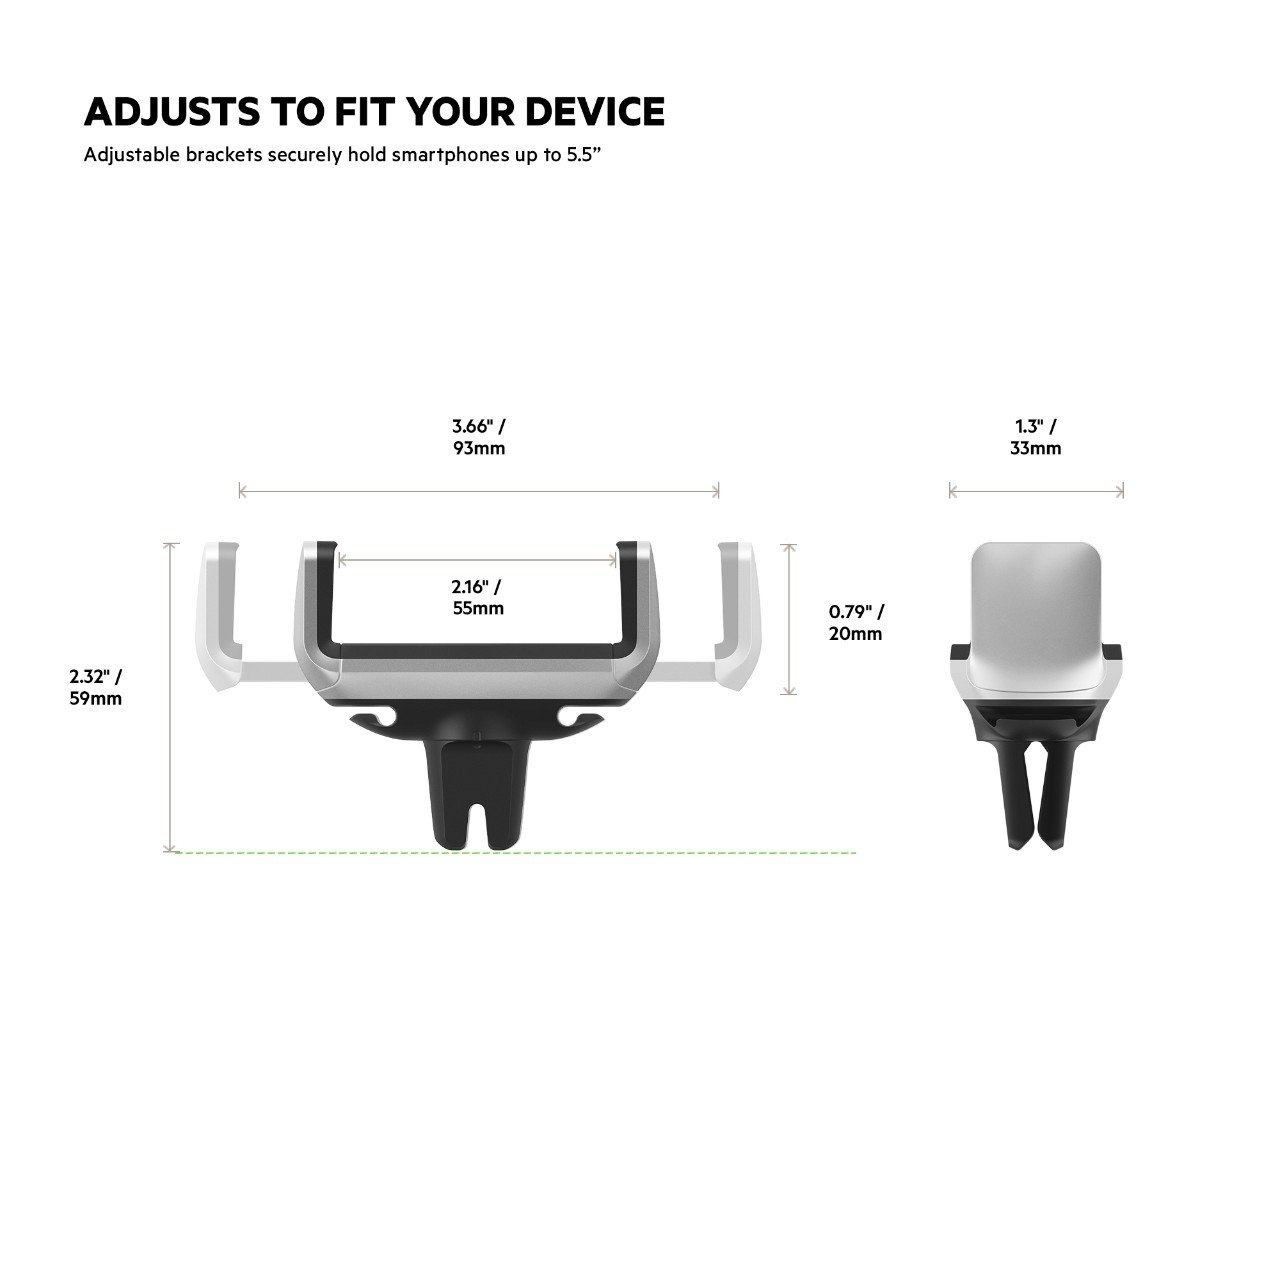 Latest Model Belkin F7U017bt Universal Car Vent Mount for iPhone Samsung Galaxy and Most Smartphones up to 5.5 inches